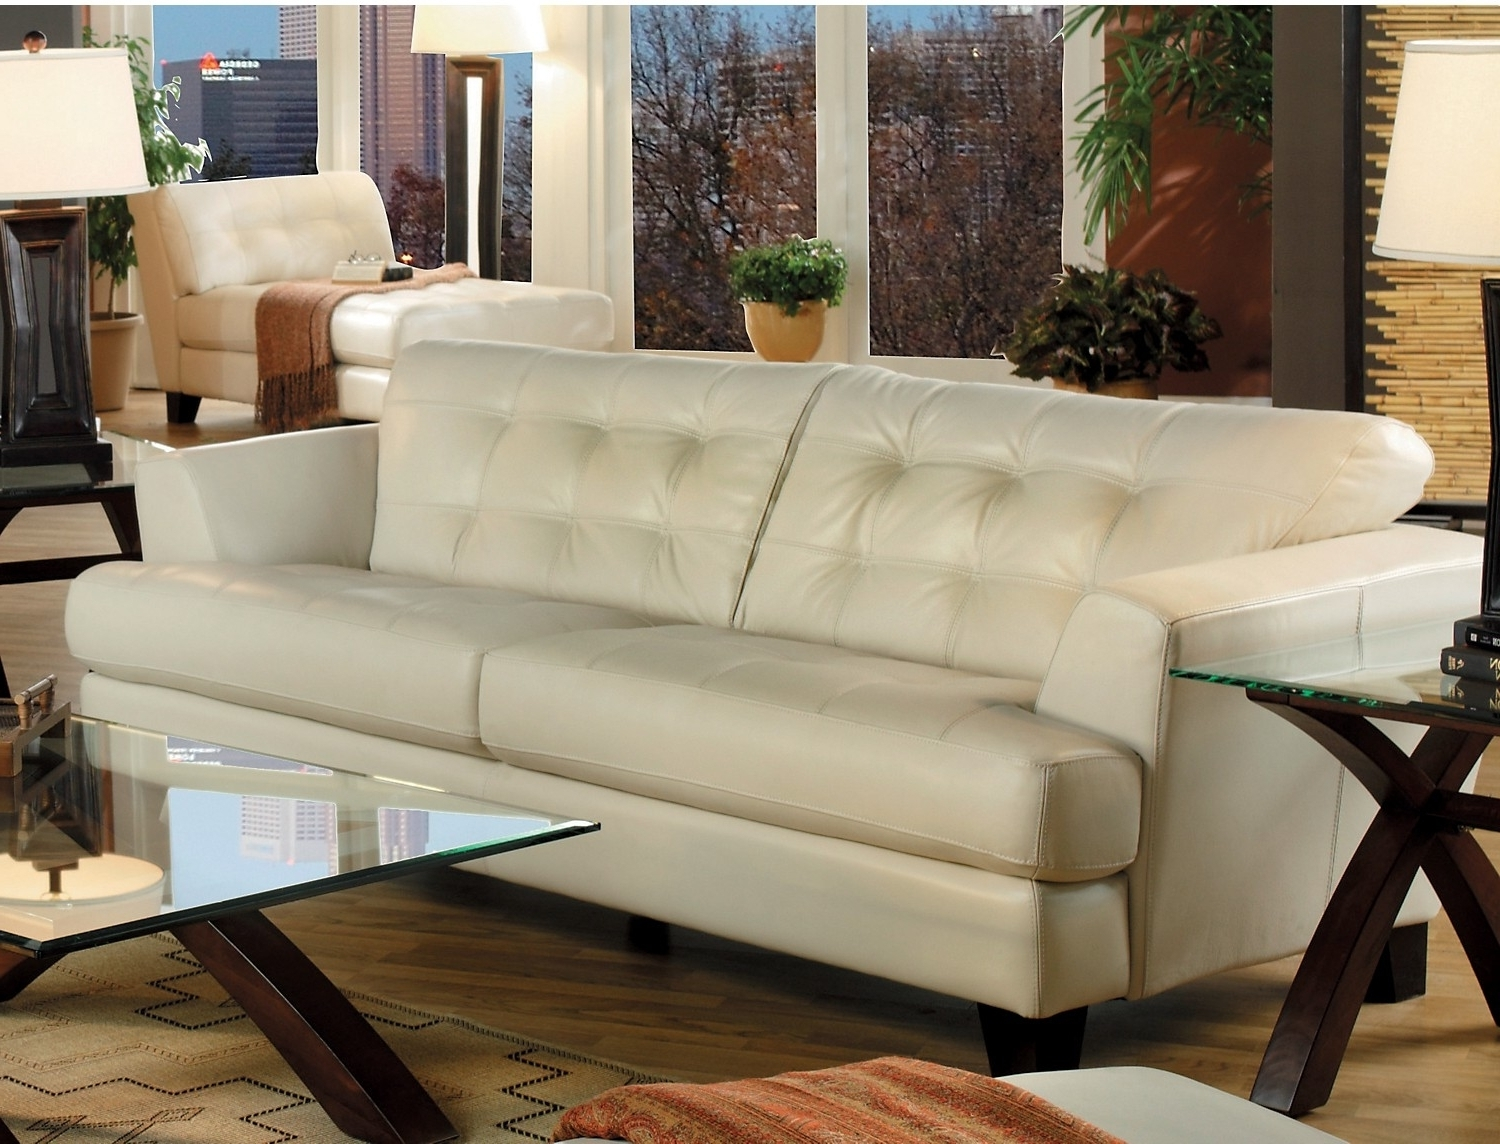 Most Current Cindy Crawford Sofas For Main Floor (View 9 of 20)